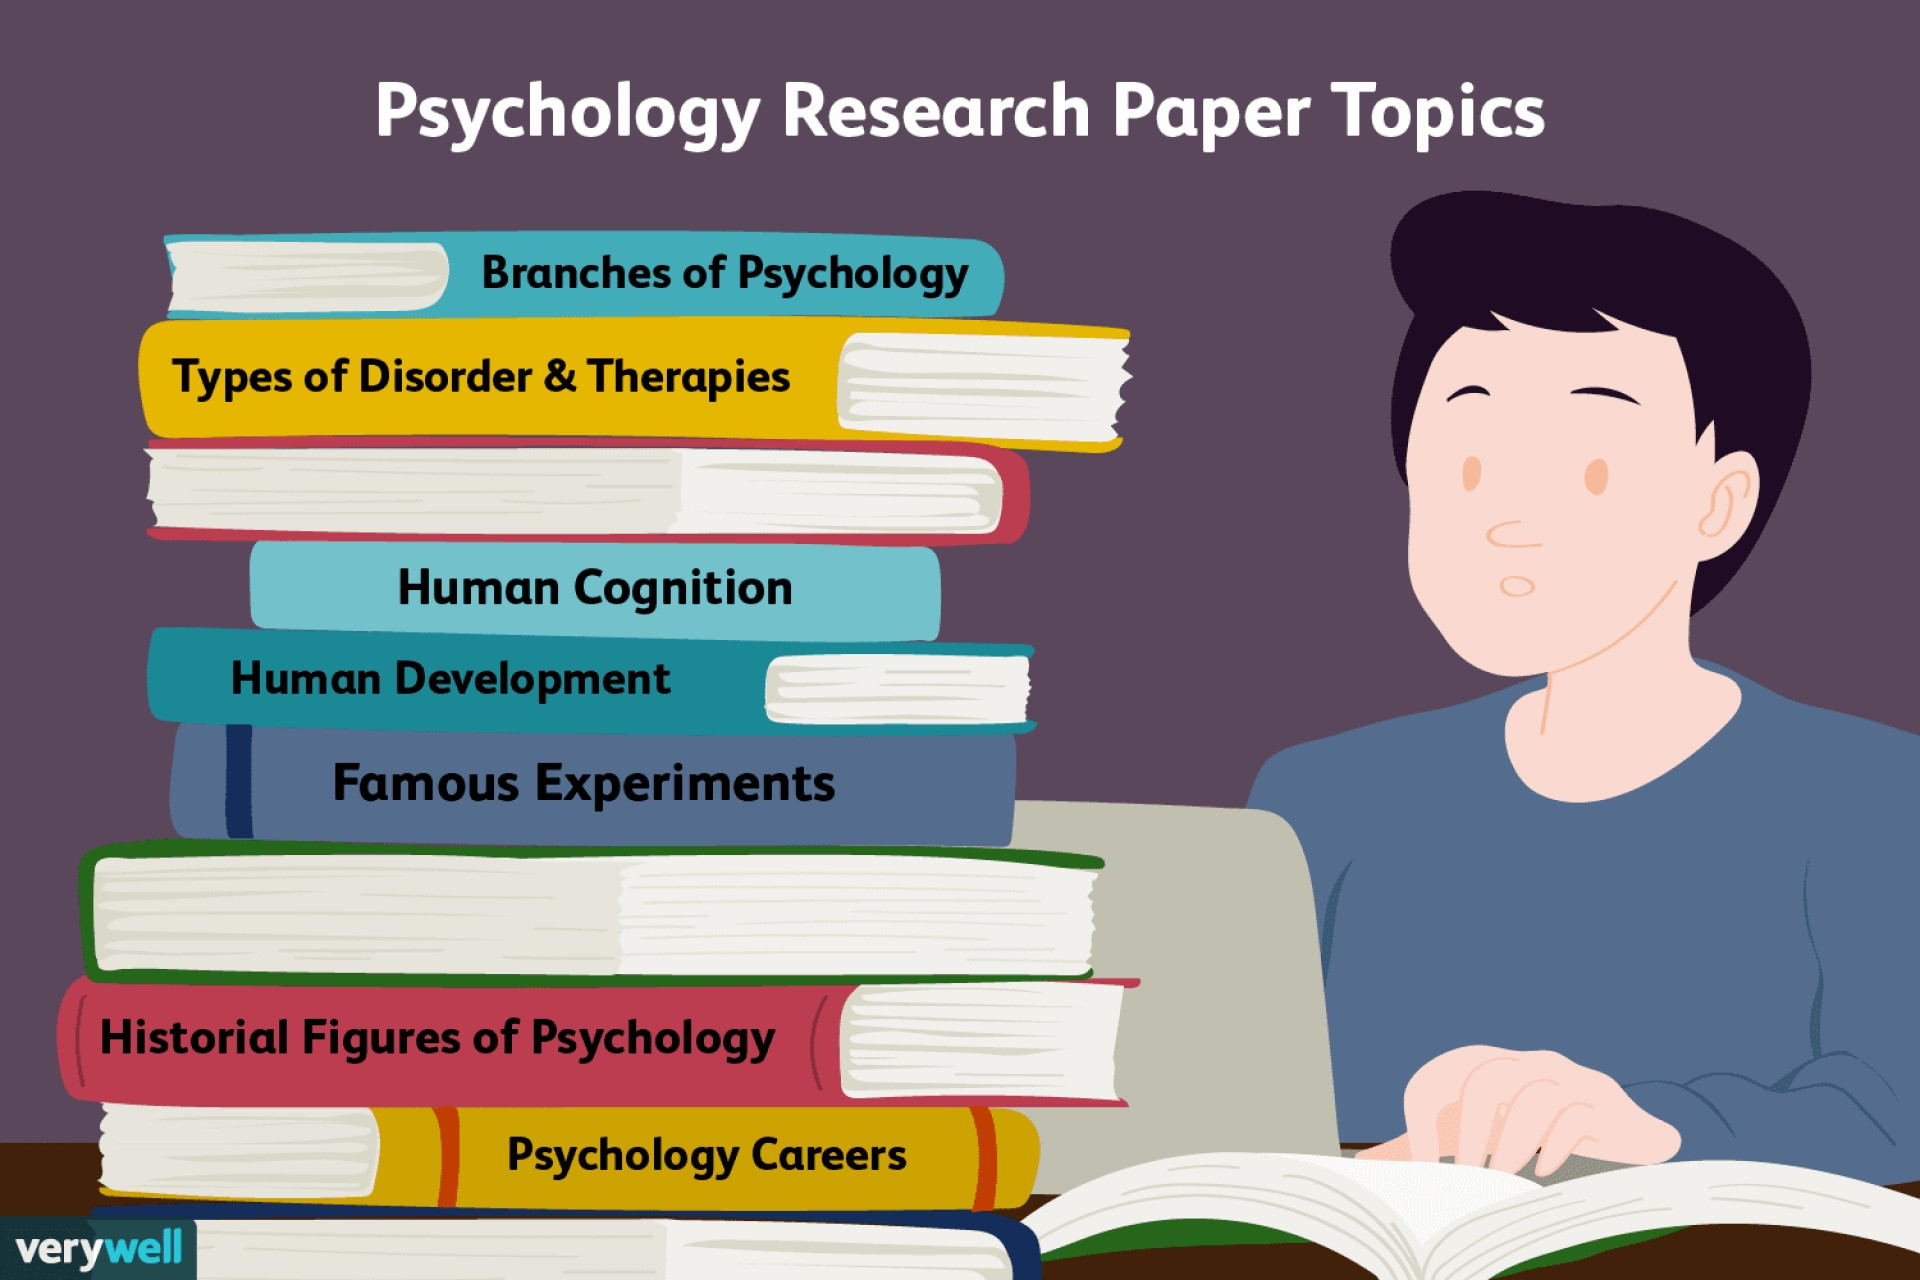 007 Research Paper Examples Of Psychology Striking Topics 1920